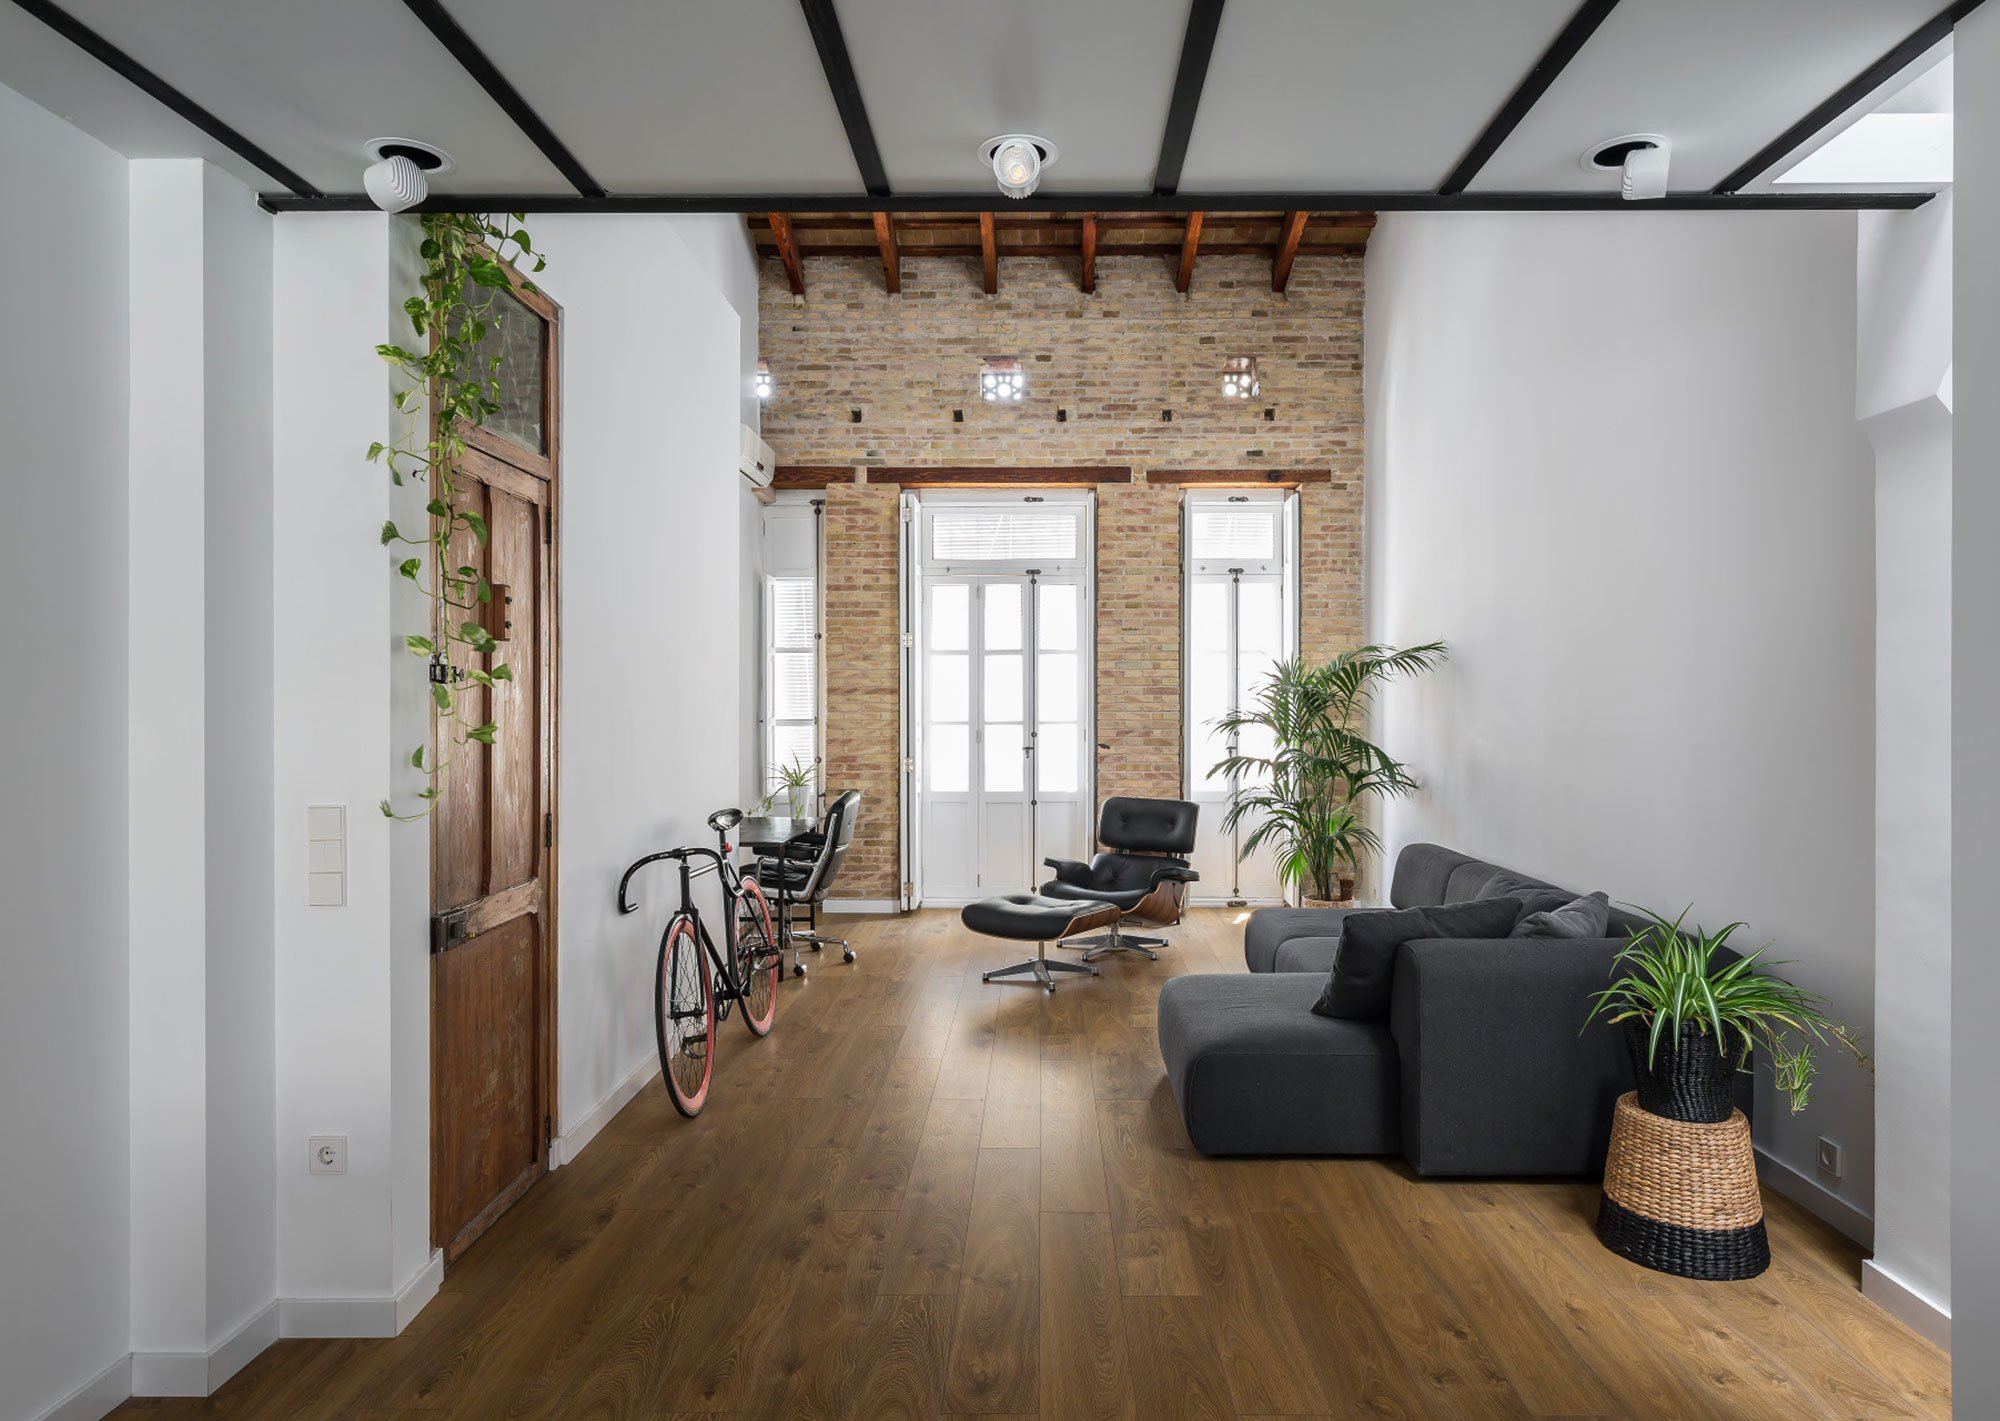 A Beautifully Renovated Loft In Valencia Spain